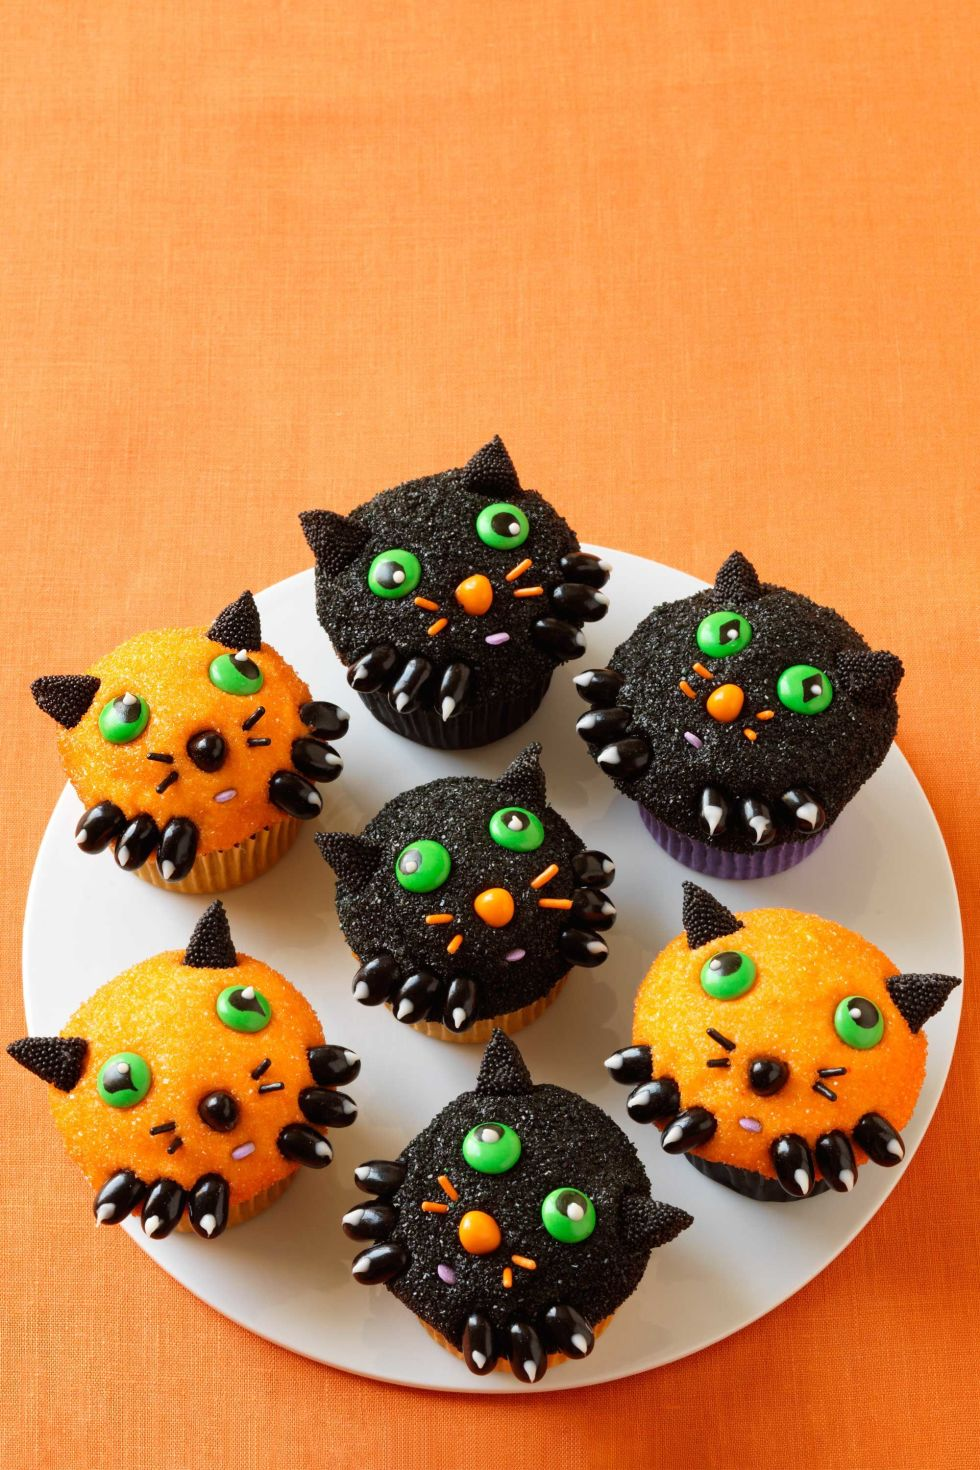 35 halloween cupcake ideas recipes for cute and scary halloween desserts - Gruesome Halloween Food